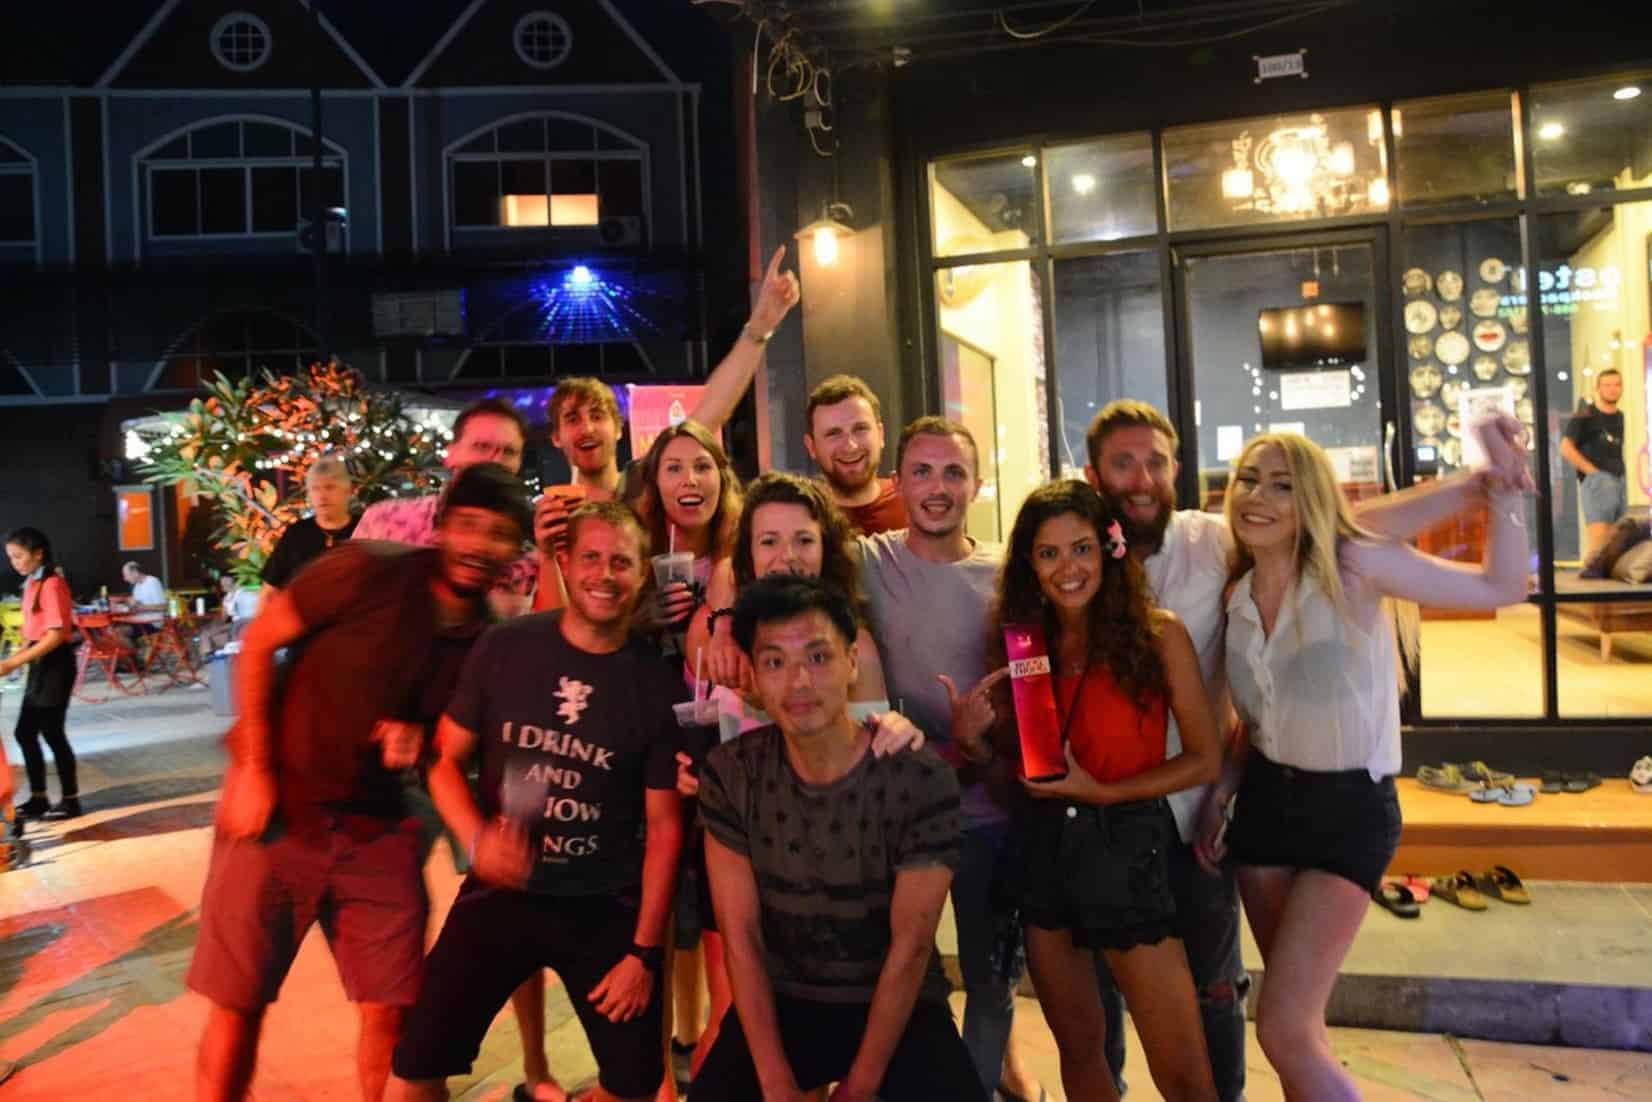 Backpackers are all smiles as they gleefully posed for a shot at Fin Hostel, Phuket, Thailand.